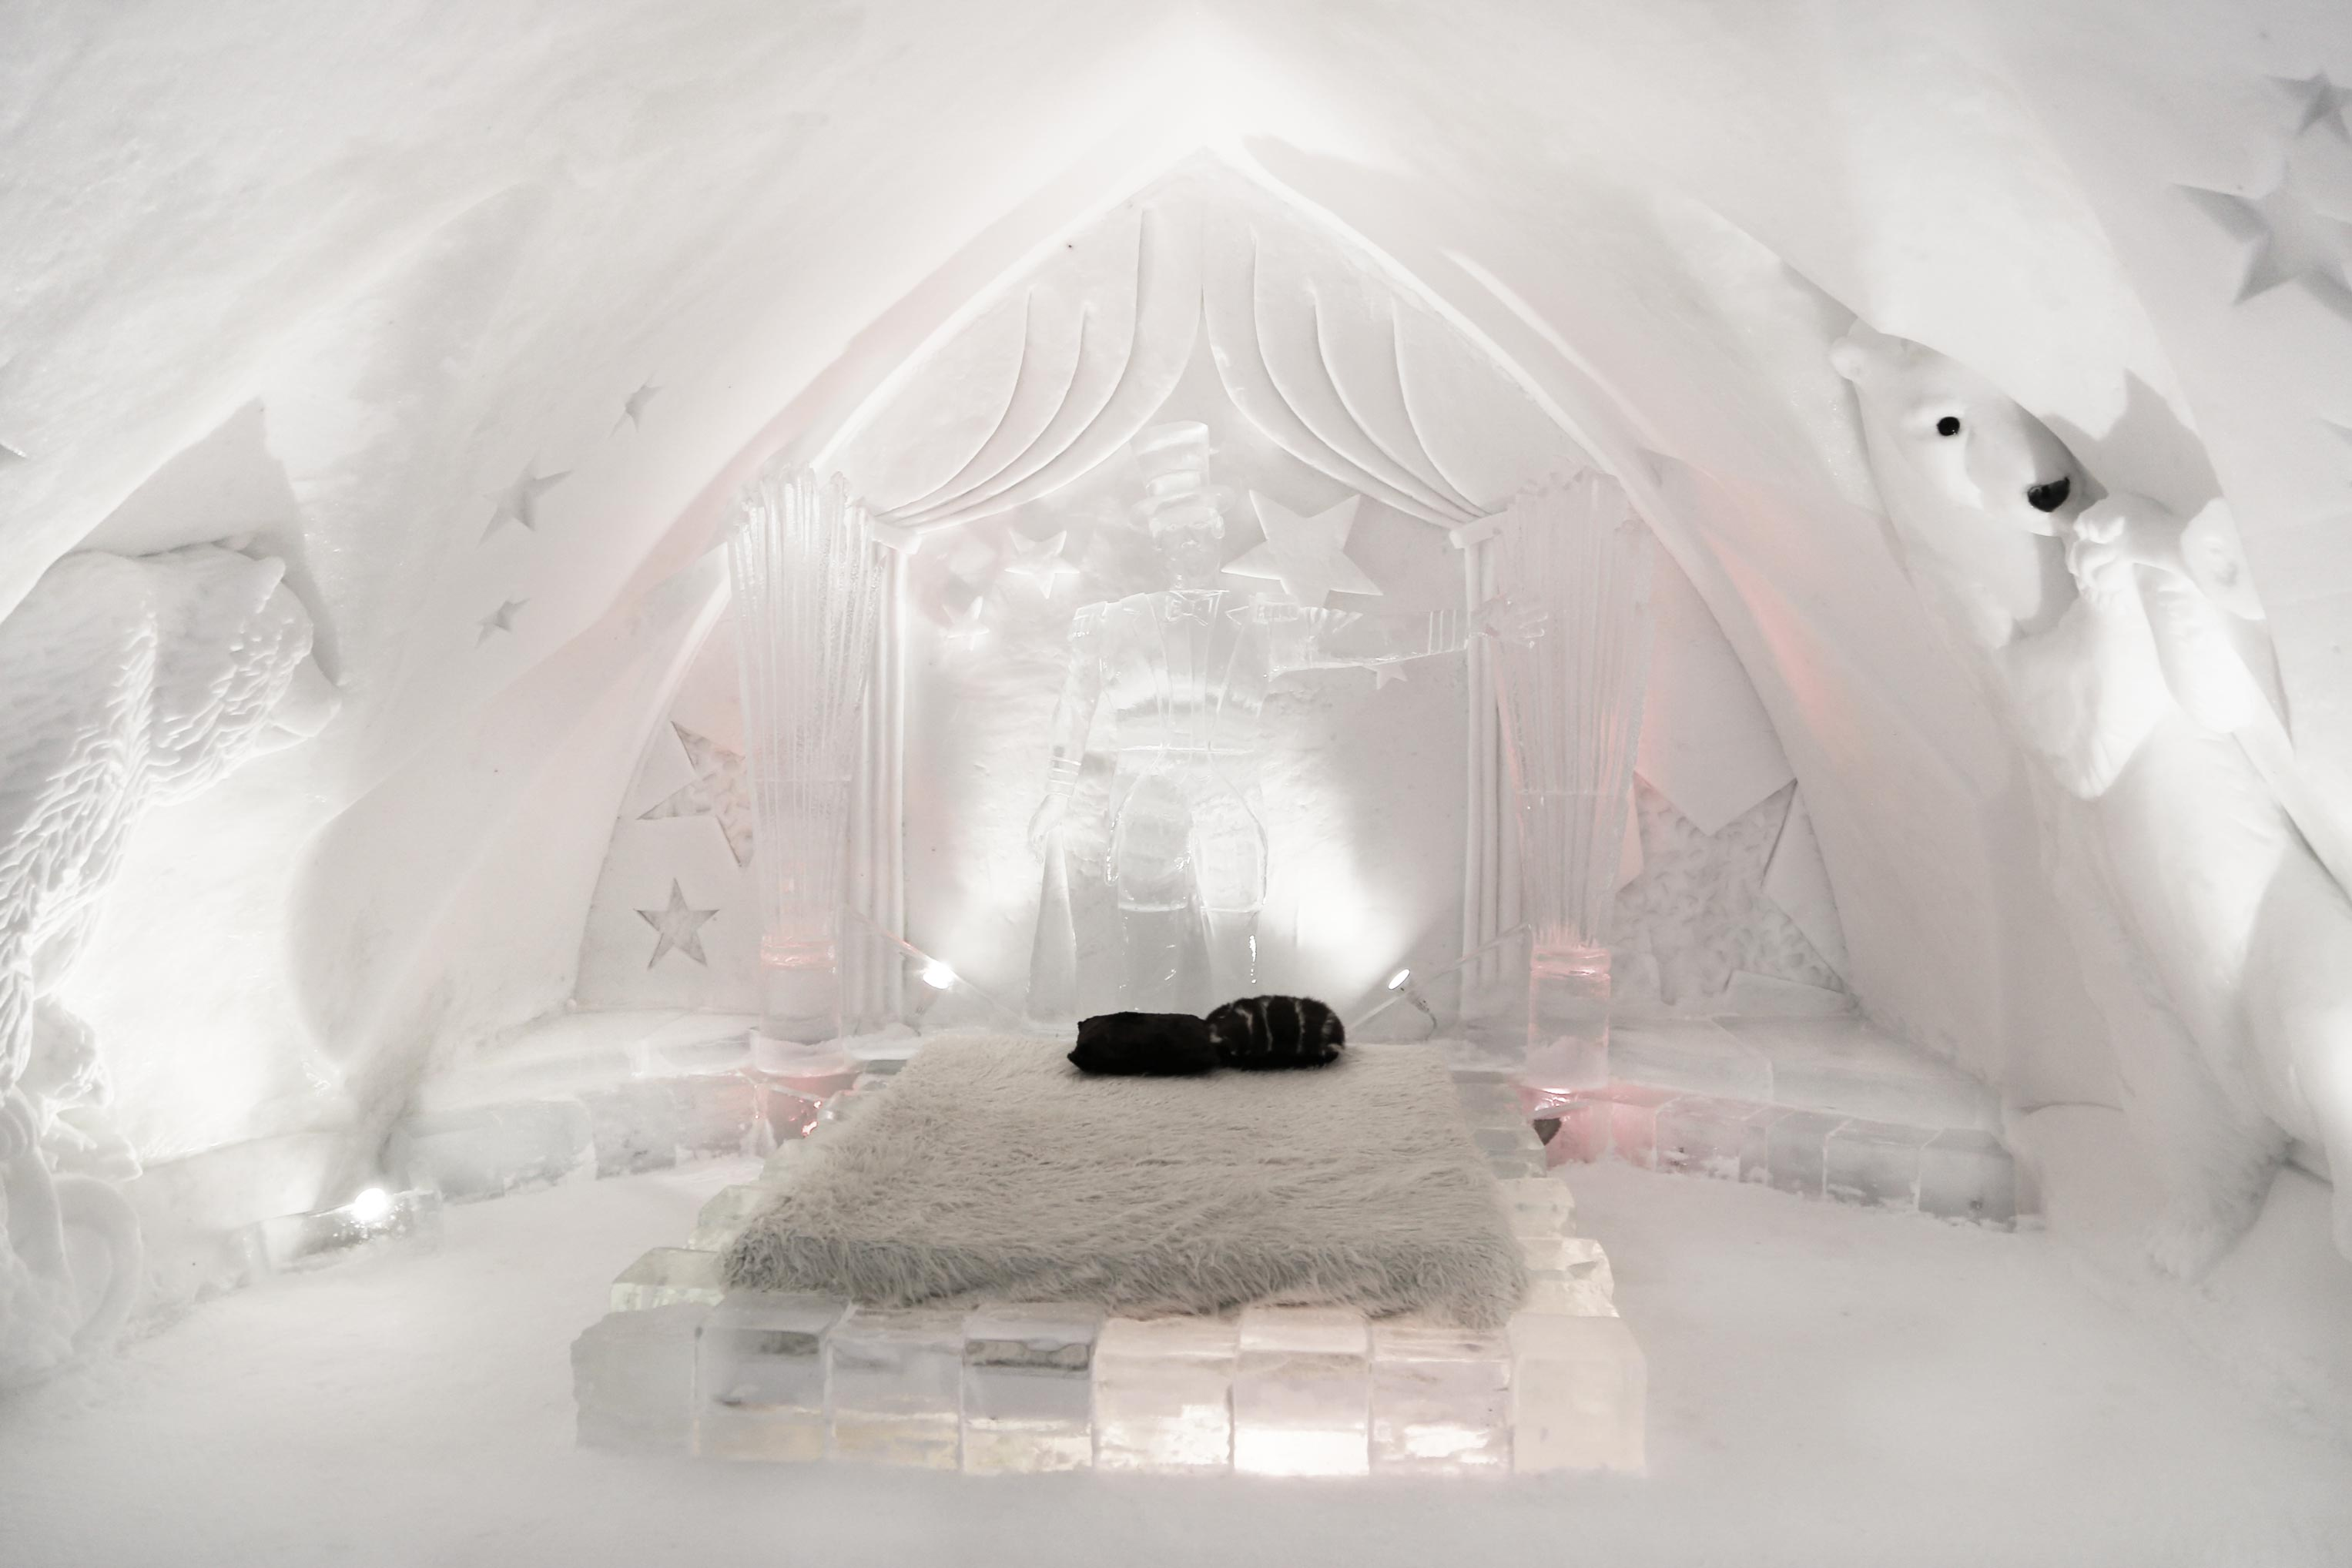 Canadian Ice Hotel